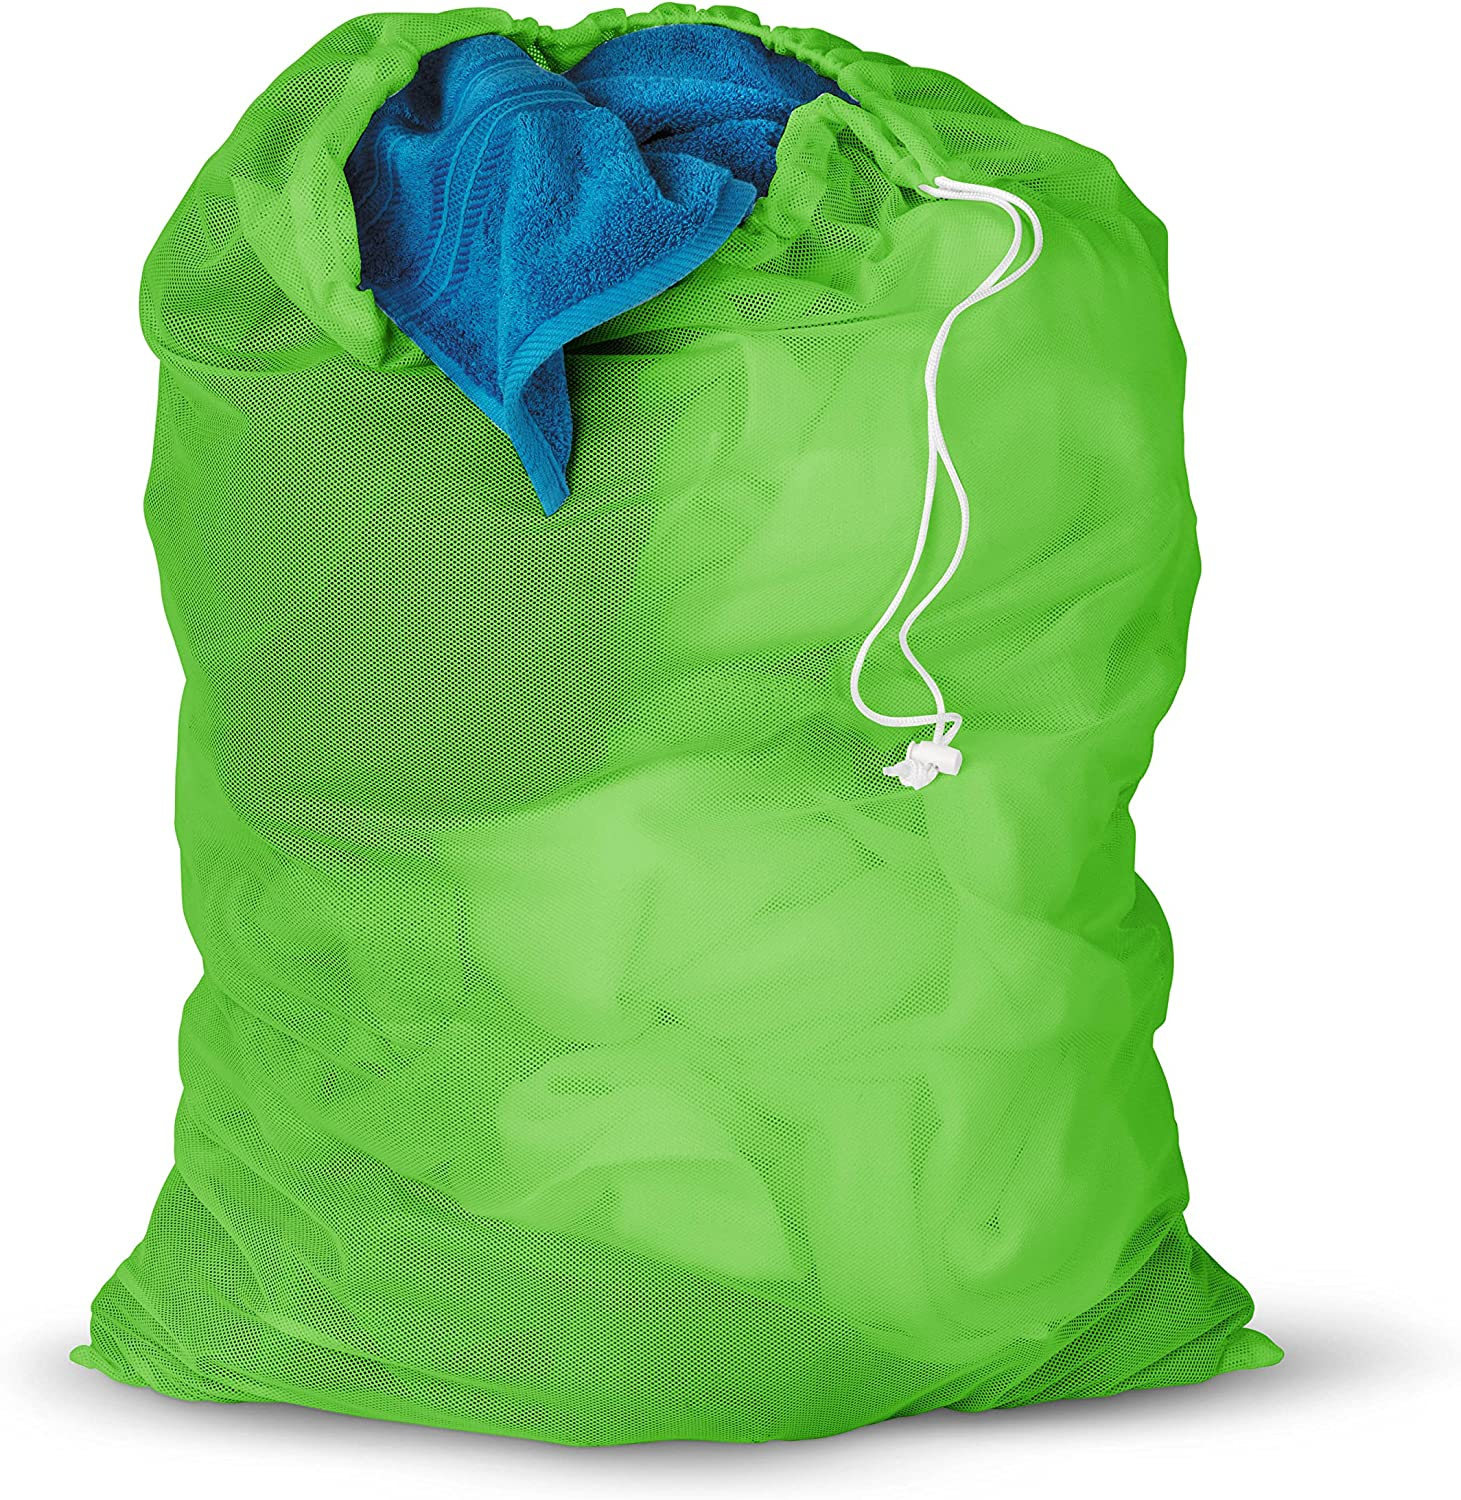 Honey-Can-Do LBG-01163 Mesh Laundry Bag with Drawstring, Green, 25-Inches L x 36-Inches H